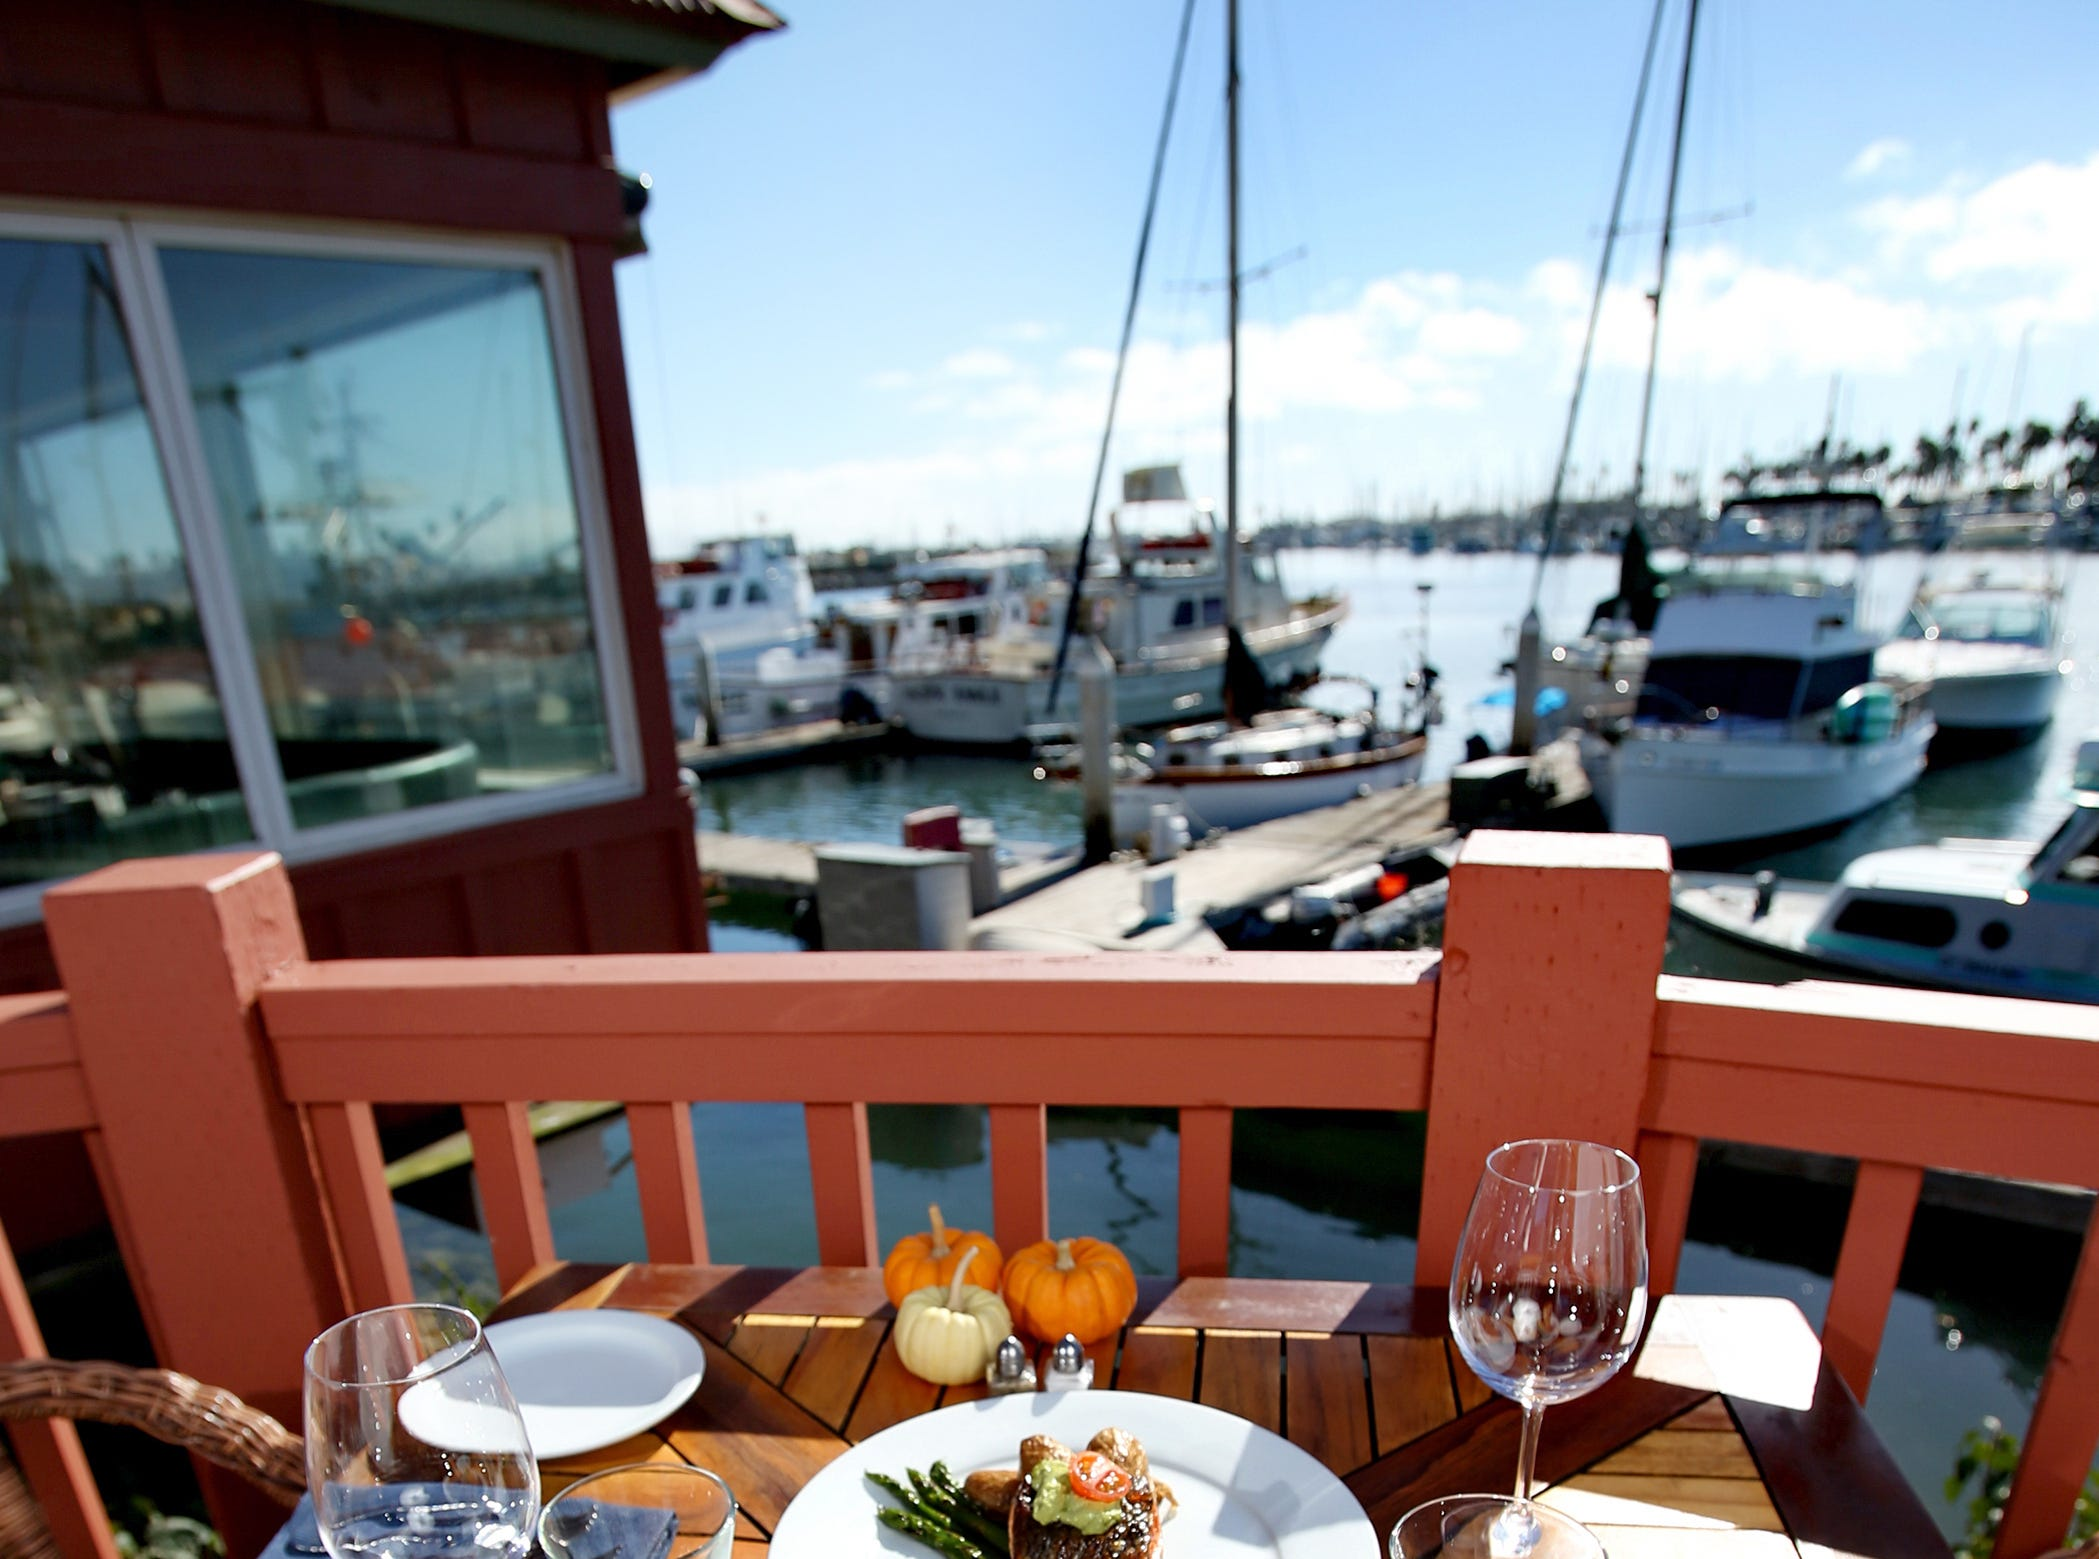 Water's Edge Restaurant and Bar is Ventura Harbor's newest waterfront restaurant. Pictured is its Chipotle Orange-Glazed Pork Chop (left to right), Mediterranean-Style Lobster Tail and Crispy Skinned Salmon.